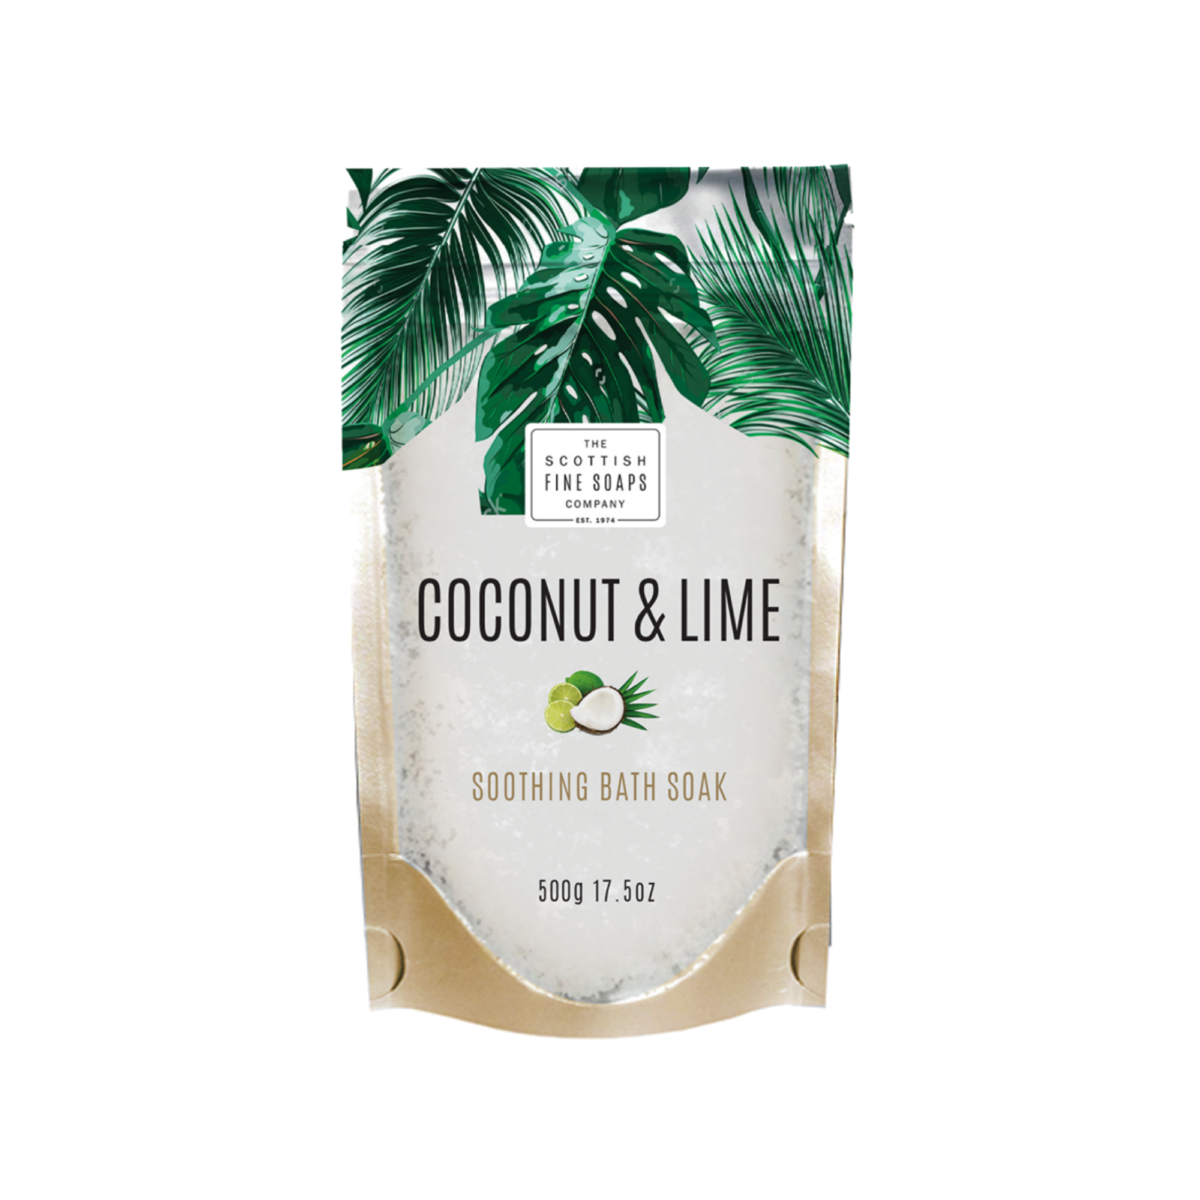 Coconut & Lime Soothing Bath Soak